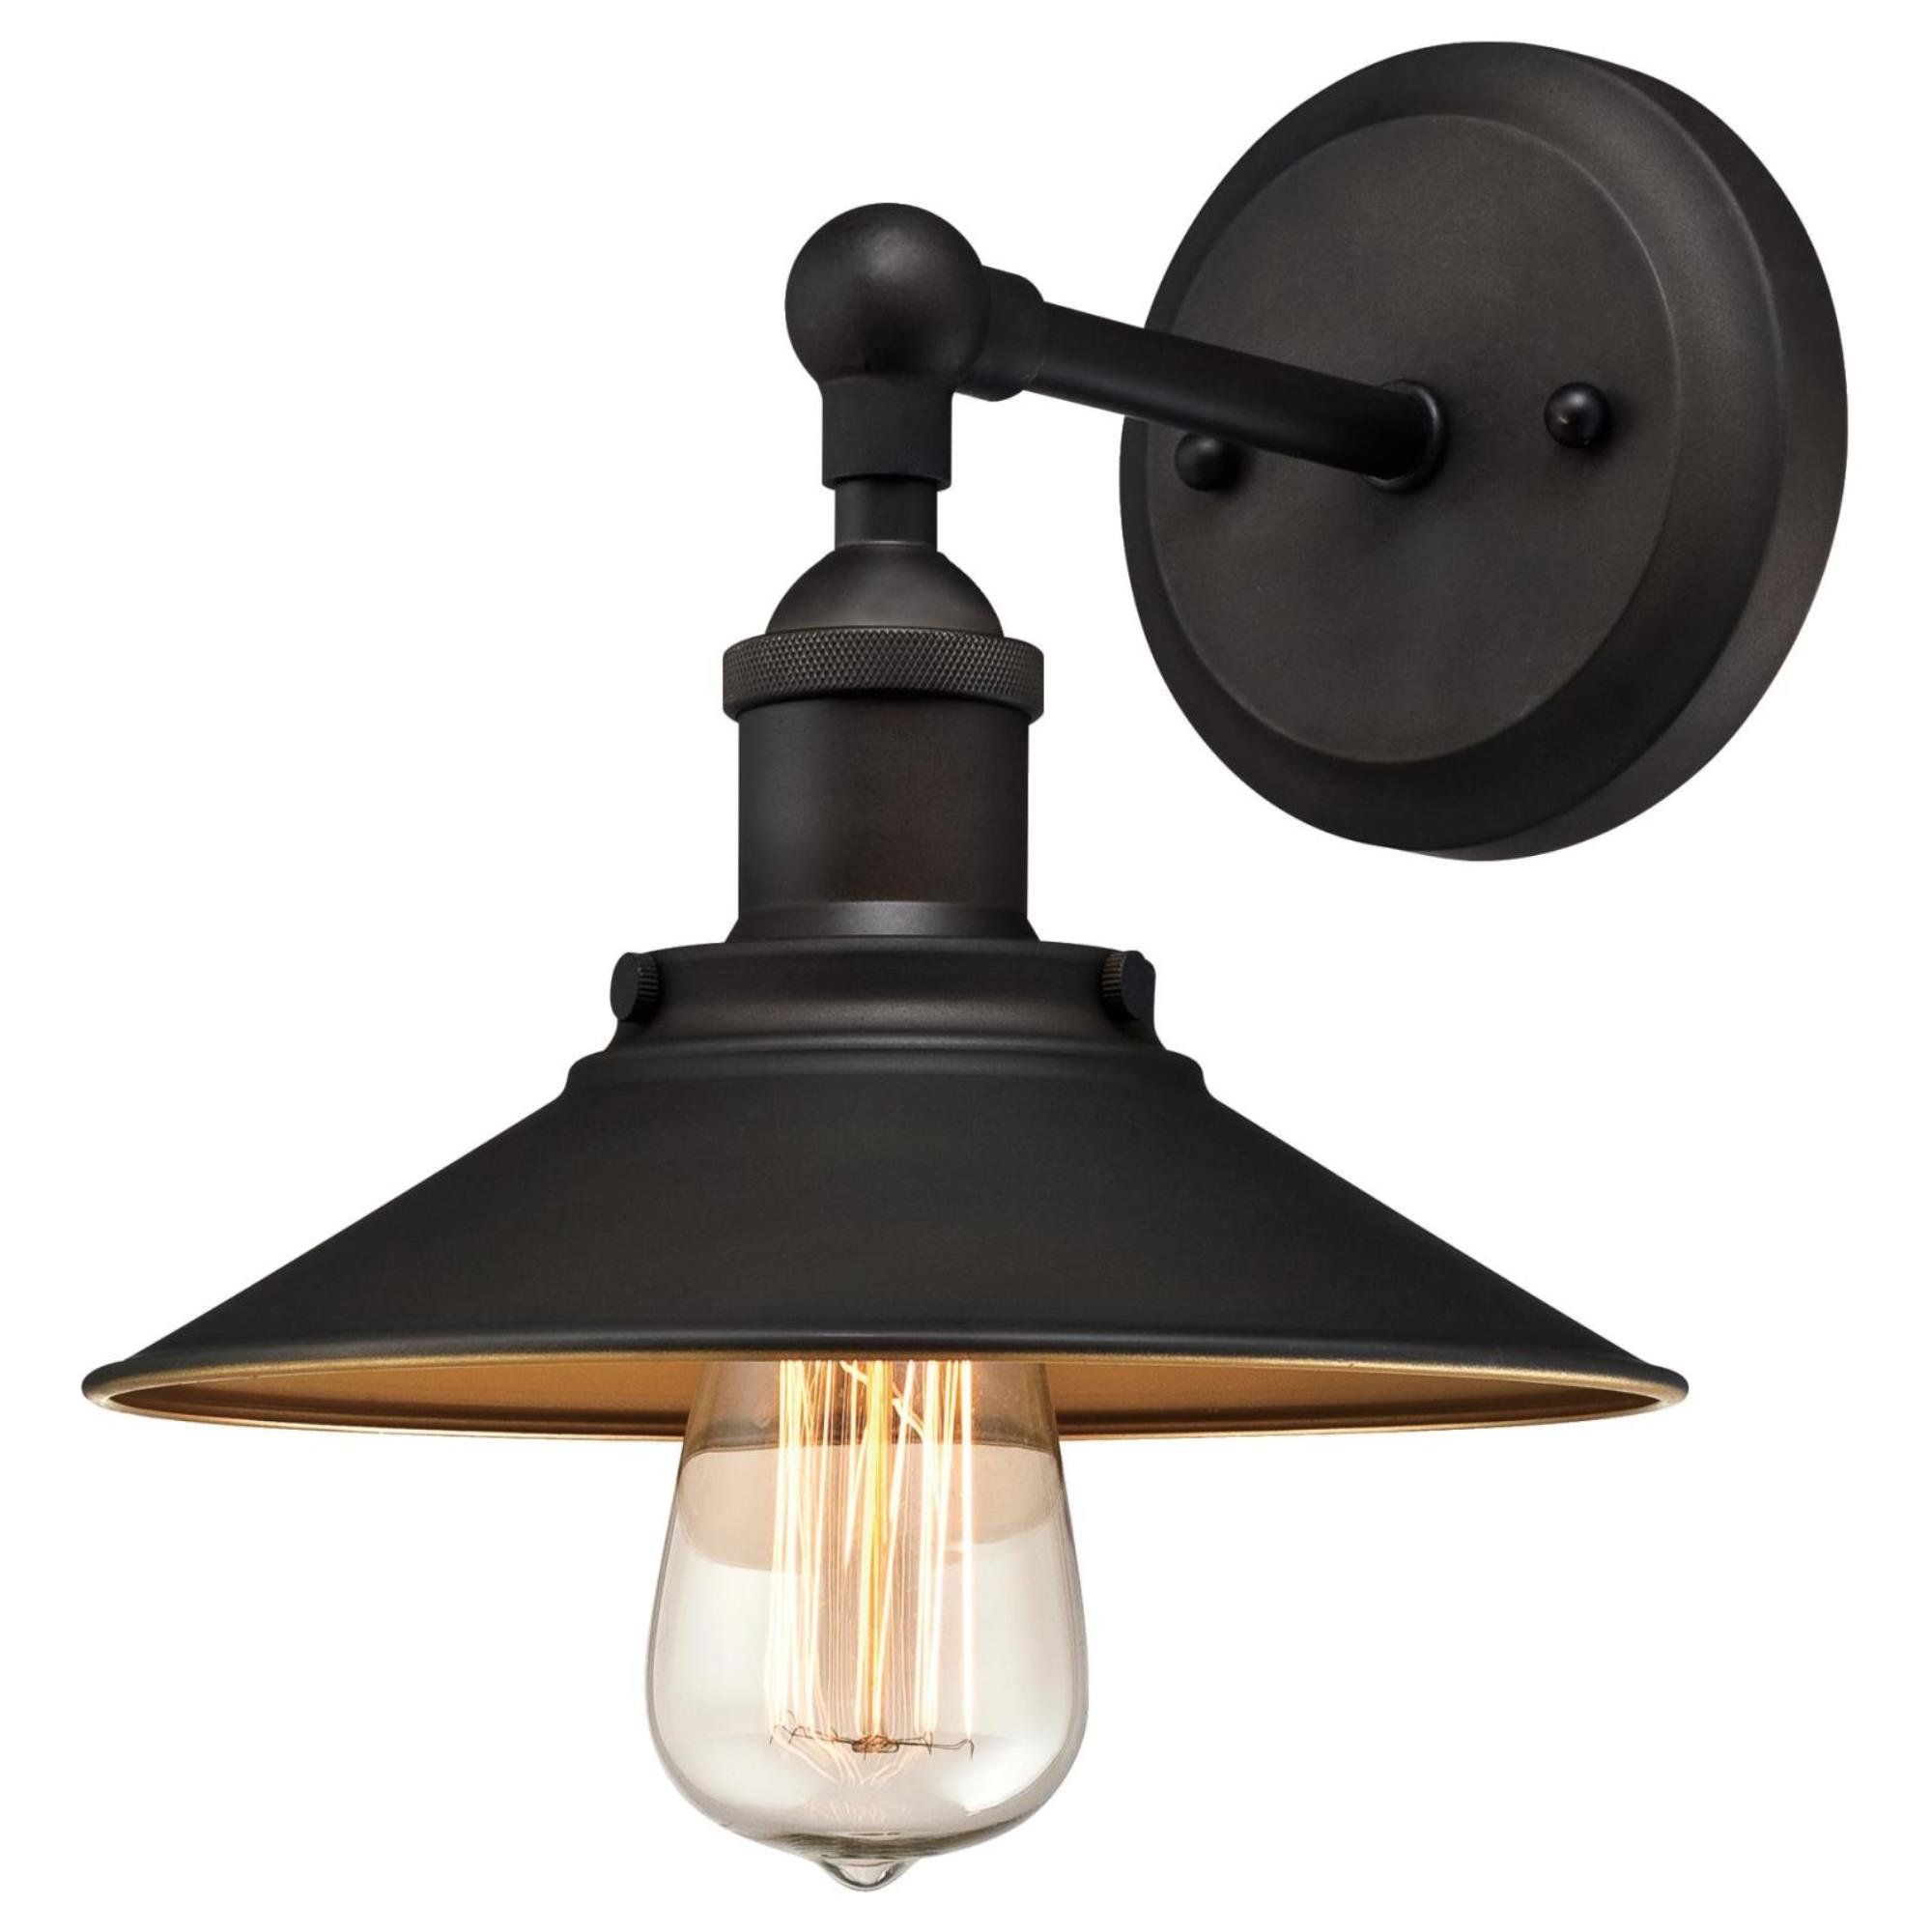 Westinghouse 6335500 Louis One-Light Indoor Wall Fixture, Oil Rubbed Finish and Metallic Bronze Interior